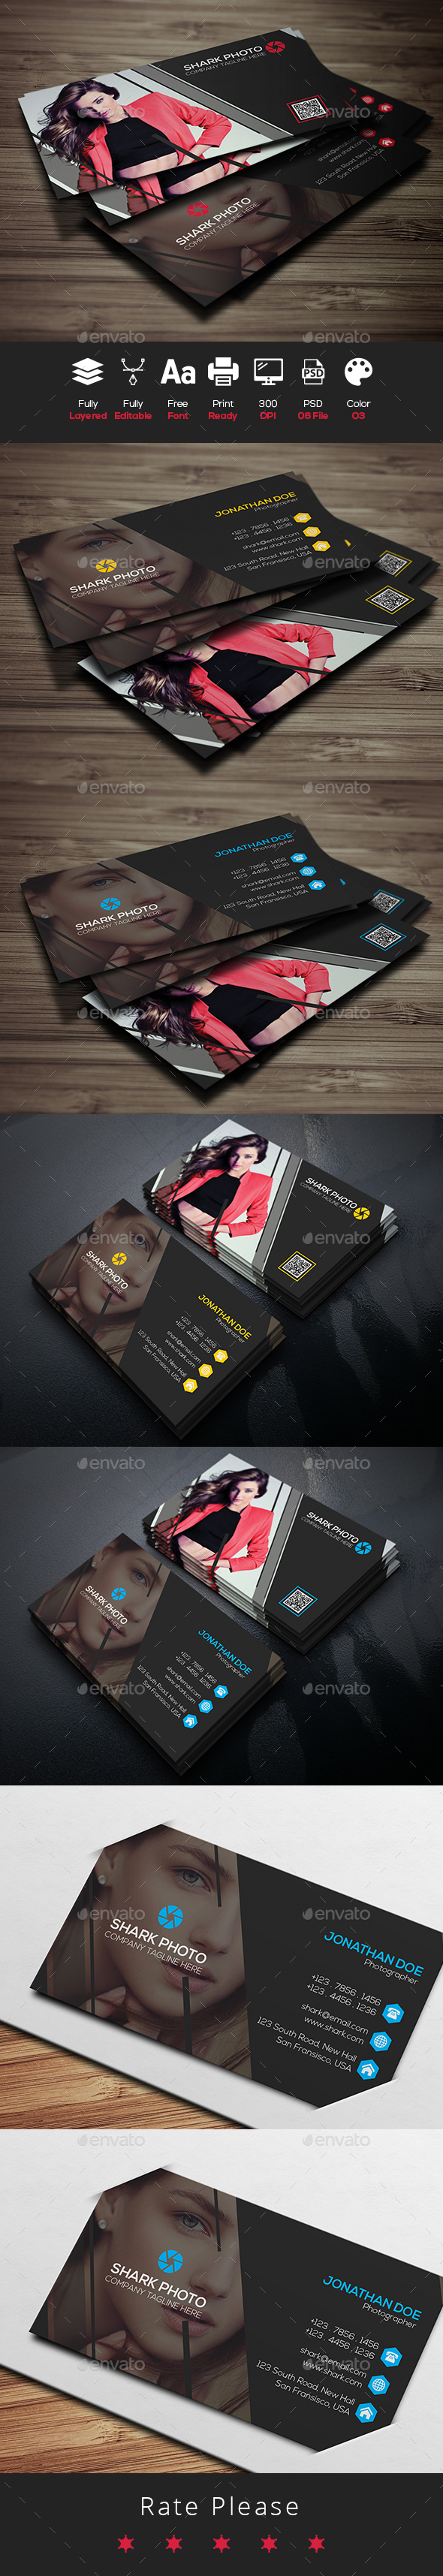 Photography Card - Business Cards Print Templates